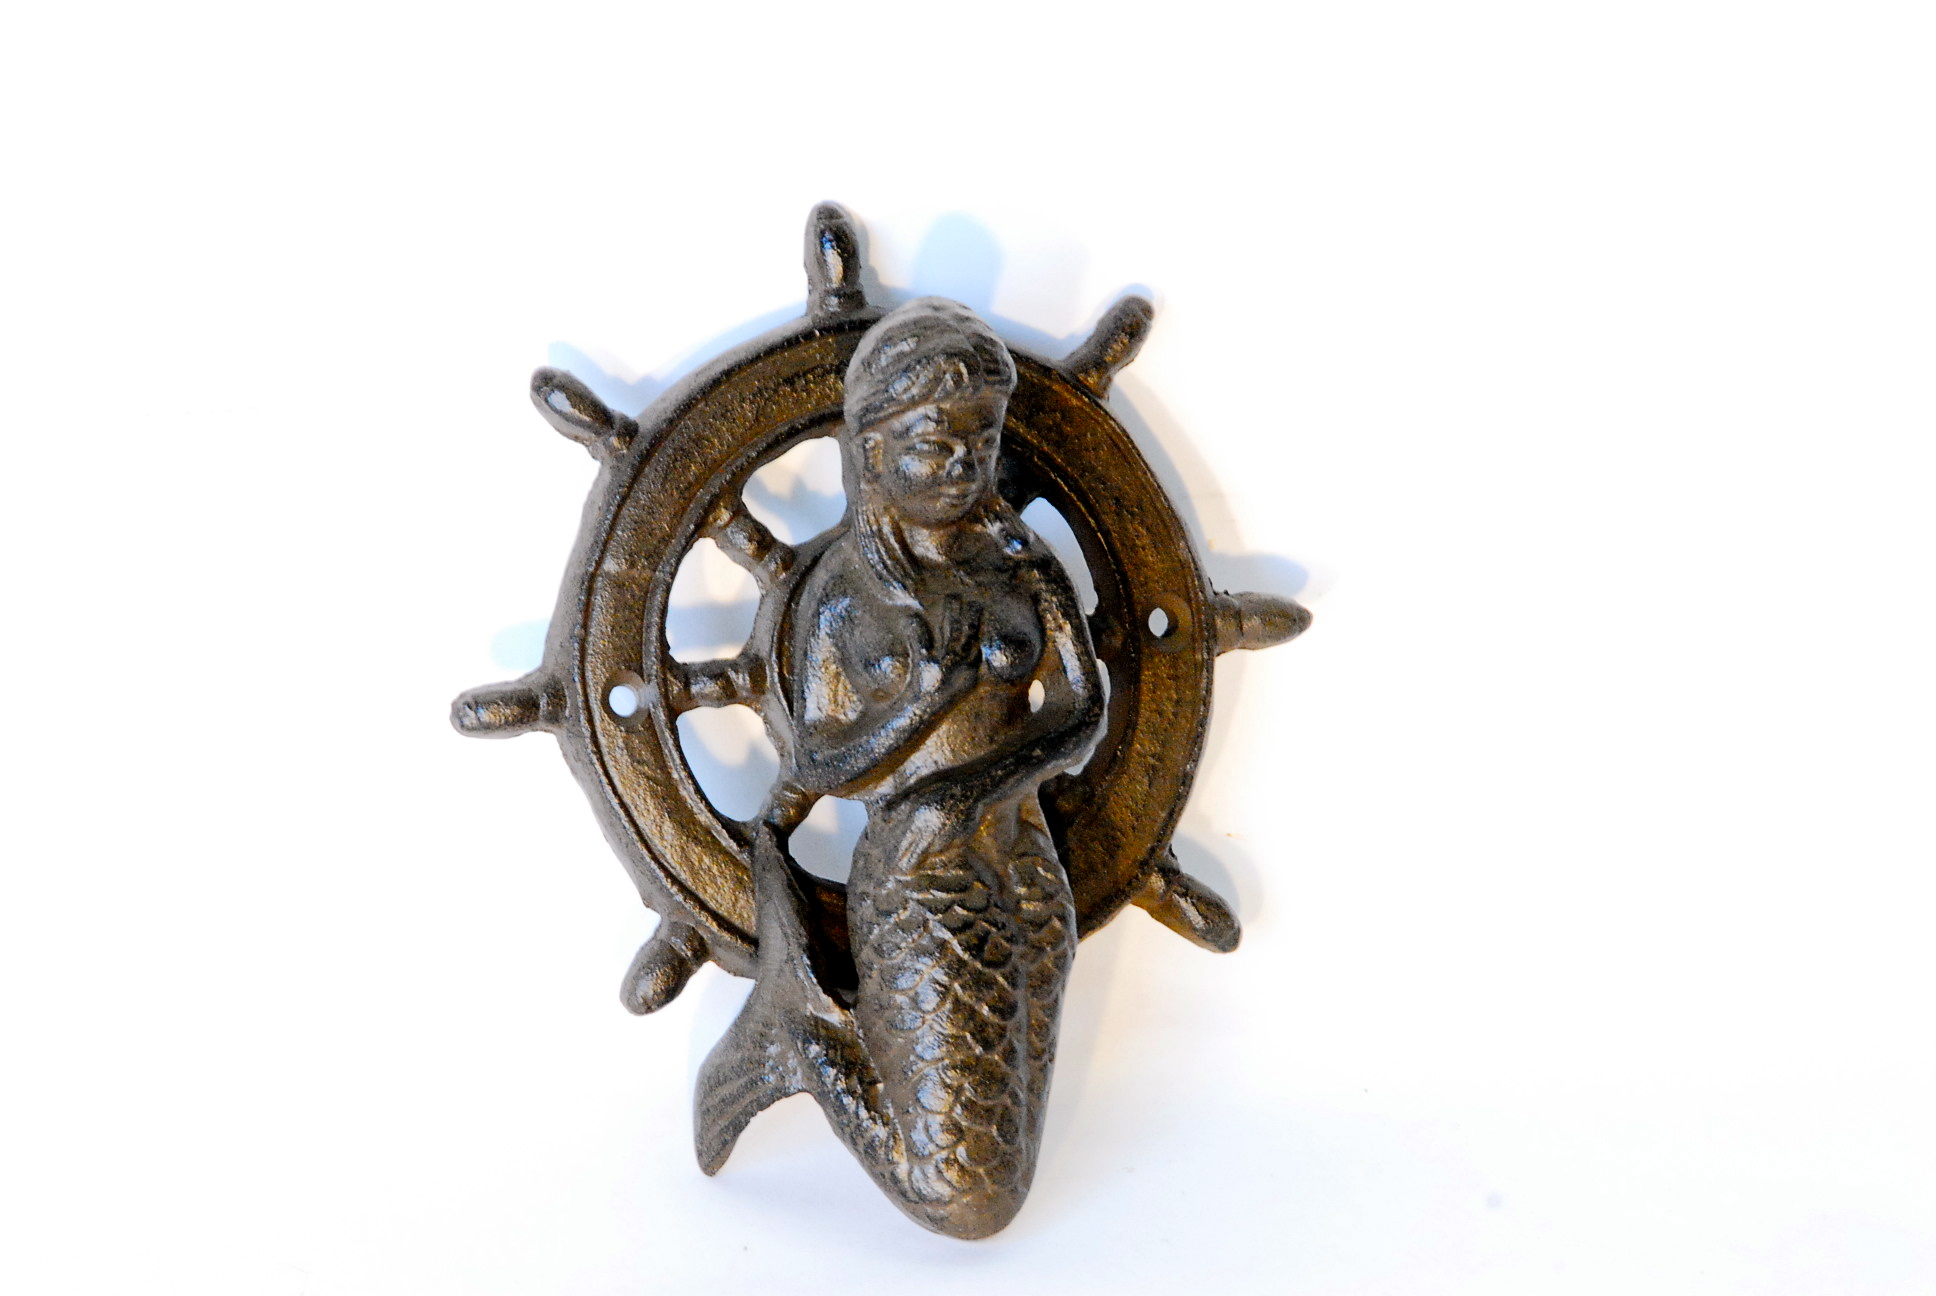 Mermaid/Ships Wheel Door Knocker U2013 Cast Iron 6u2033 X 5u2033  4 In A Box